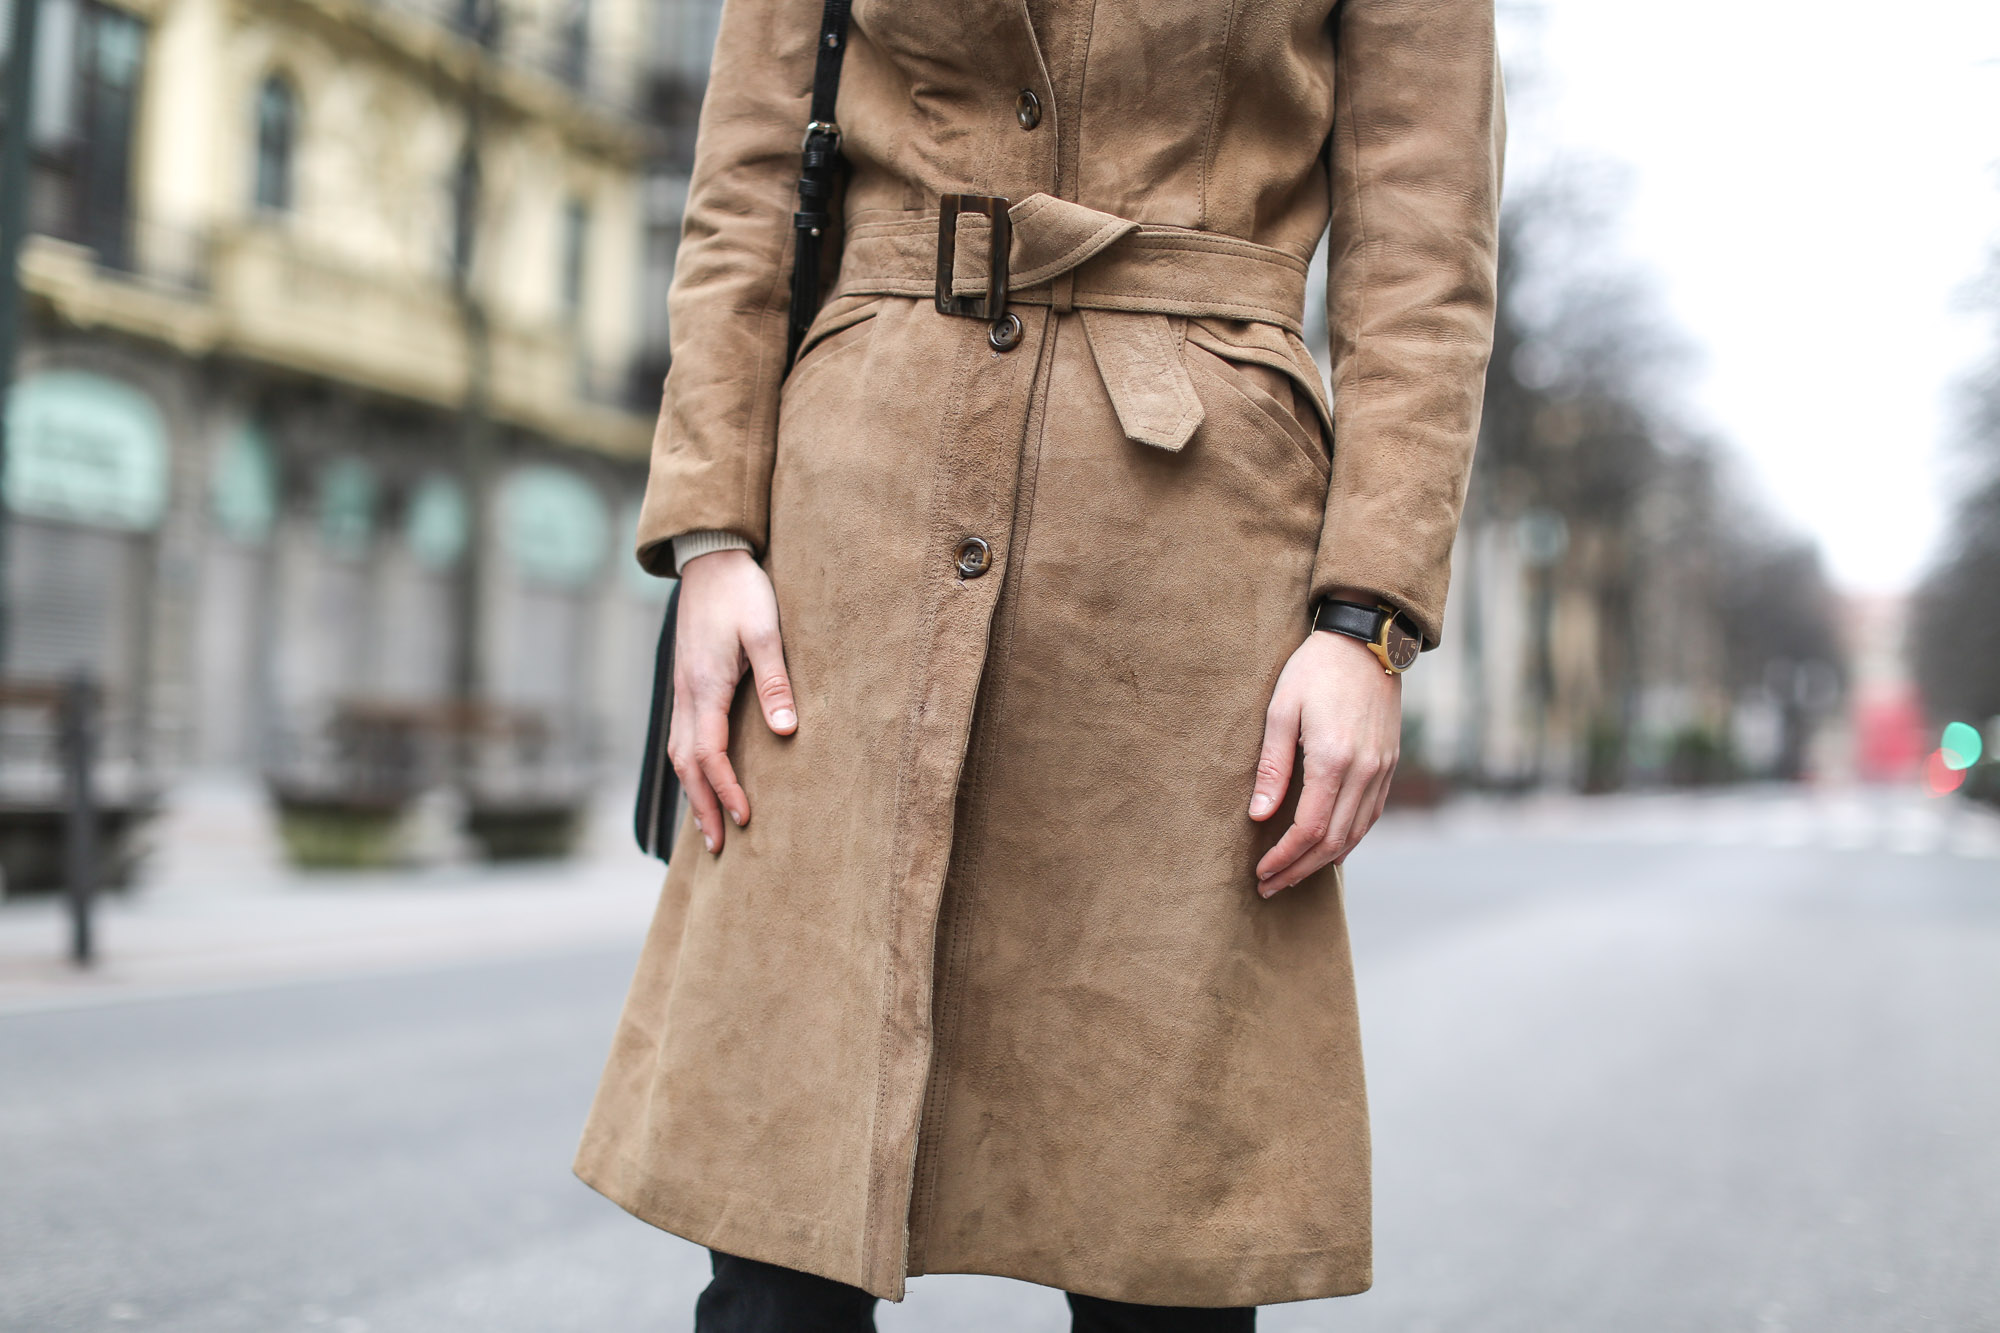 Clochet-streetstyle-black-flared-jeans-suede-vintage-coat-finery-london-bag-6